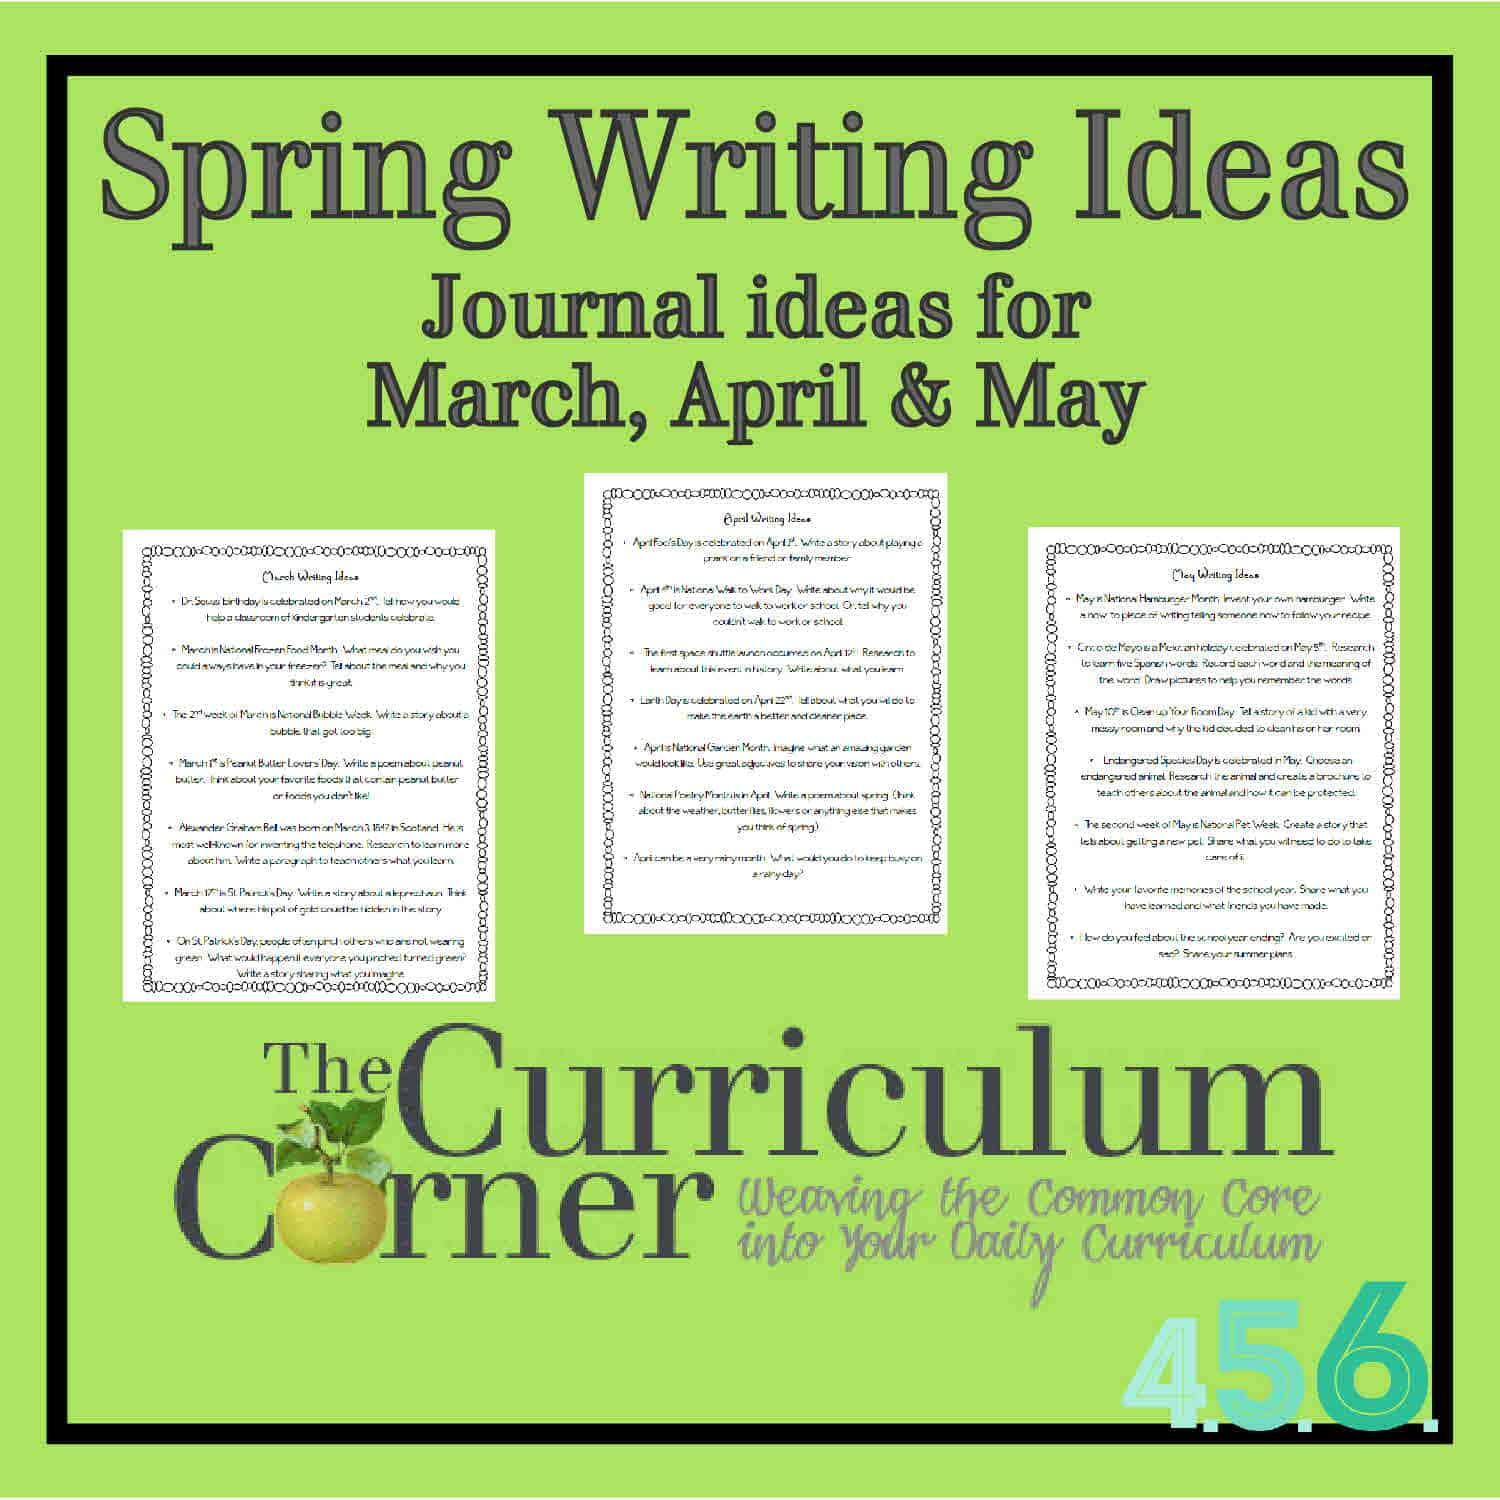 Spring Writing Ideas